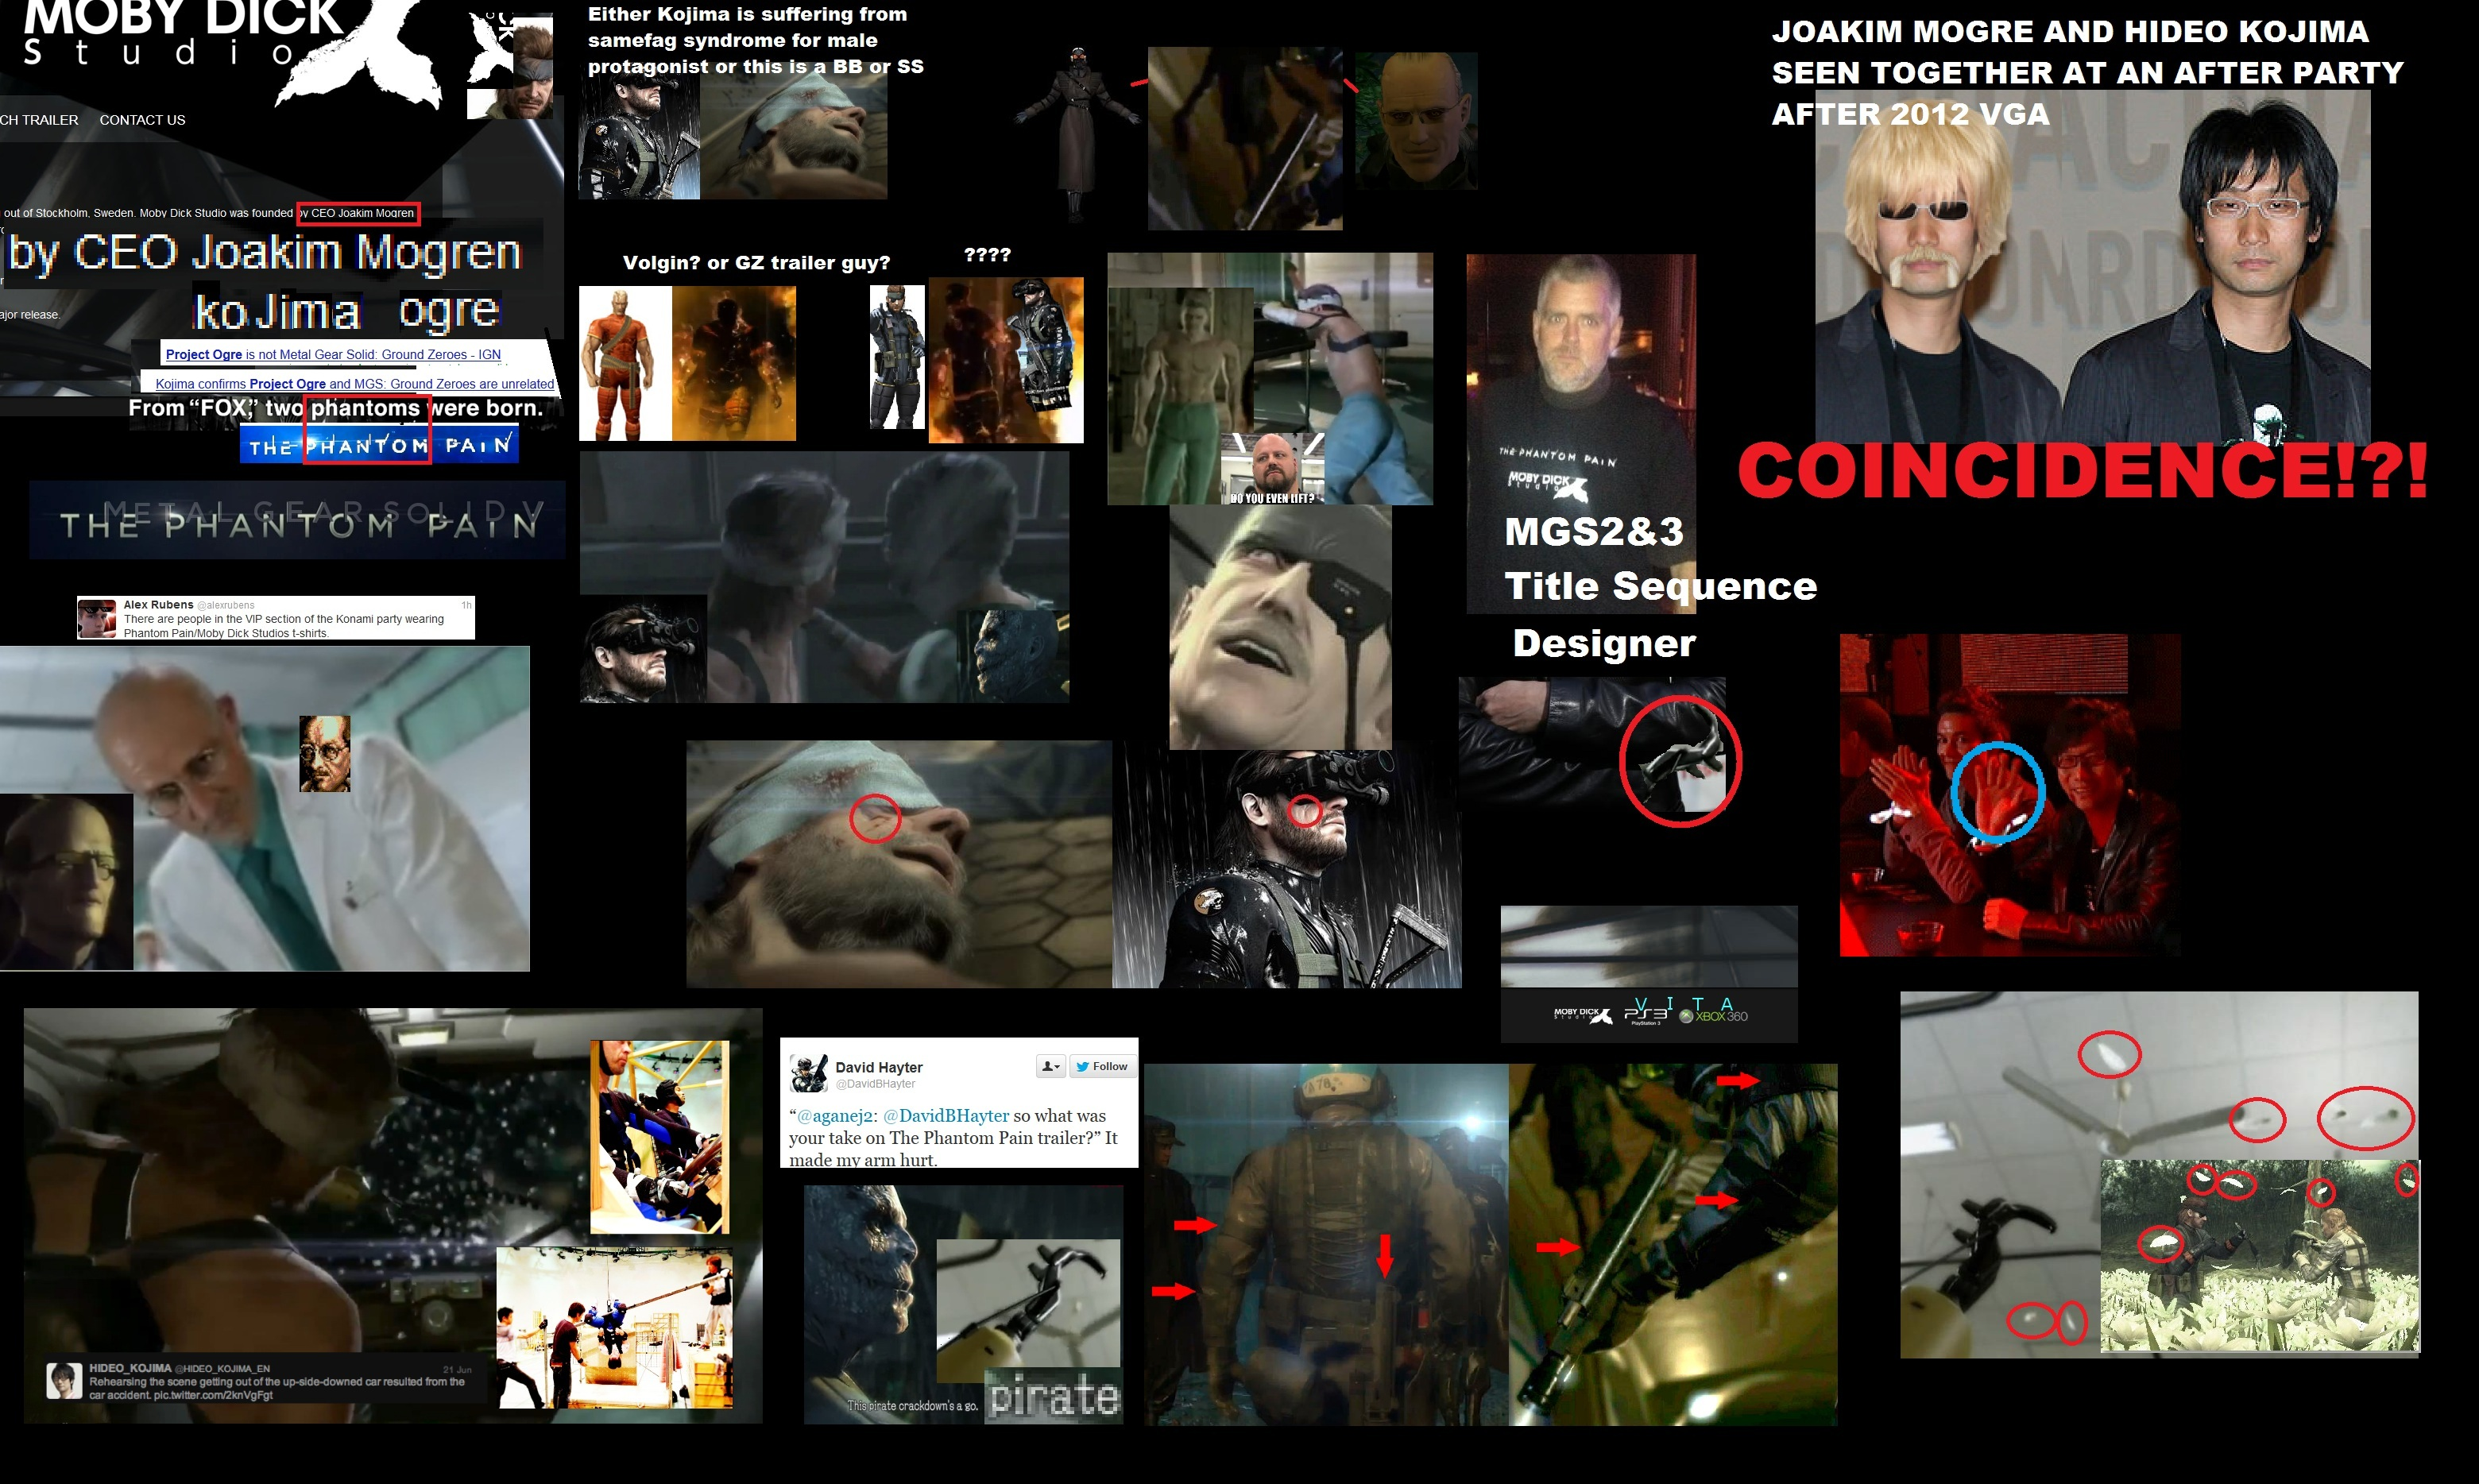 xno kappa games combat treatment redacted situations combat-related sustained damage subject neurological purpose psychological last part illegible implementation impairment stress enhancement ability following studios moby hard anyone case phantom pain ps3360 read project program phantom_painmme contractor 07-a942 omega matrix sector dick